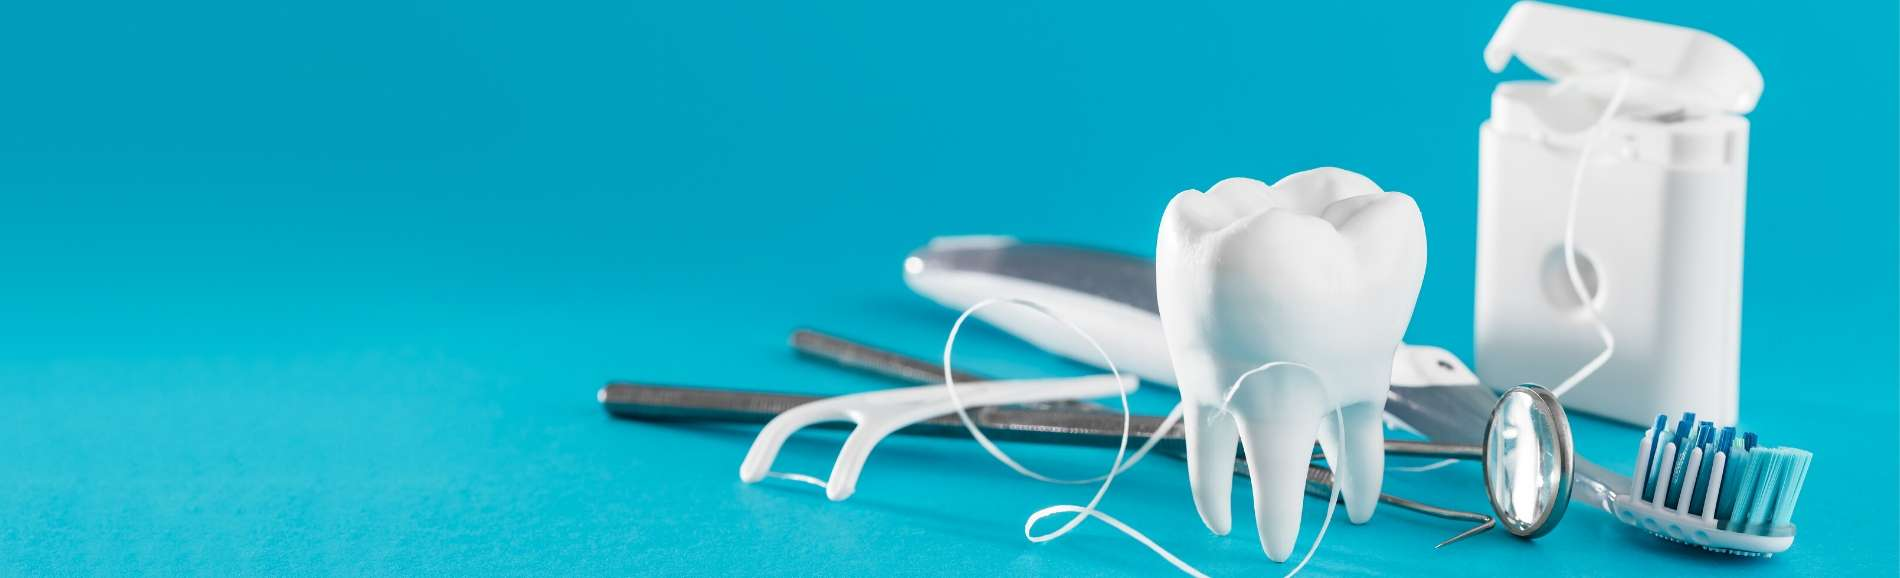 Dental instruments, tooth and tooth floss